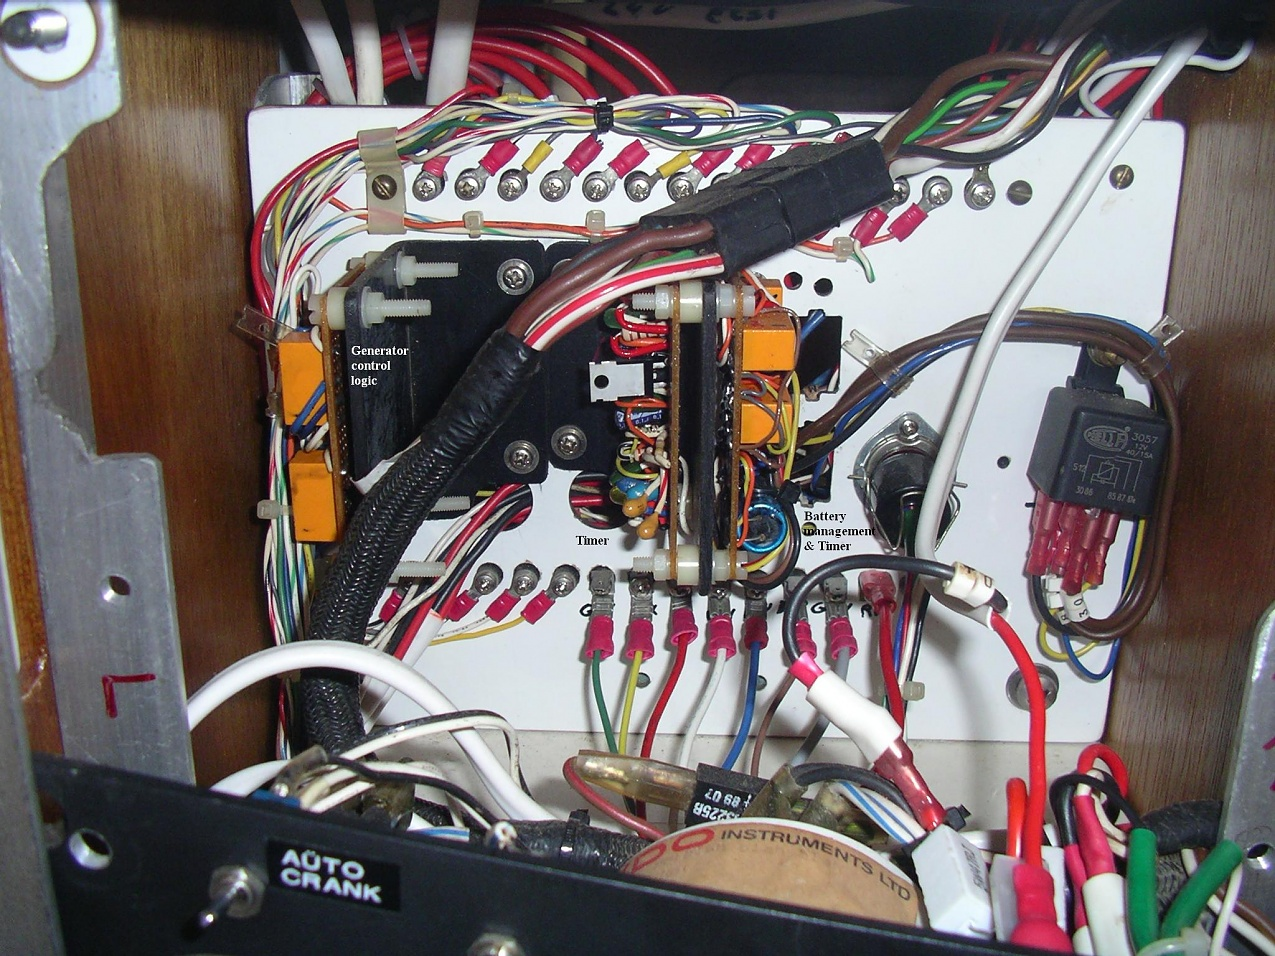 Click image for larger version  Name:3pcb.jpg Views:128 Size:506.2 KB ID:7508